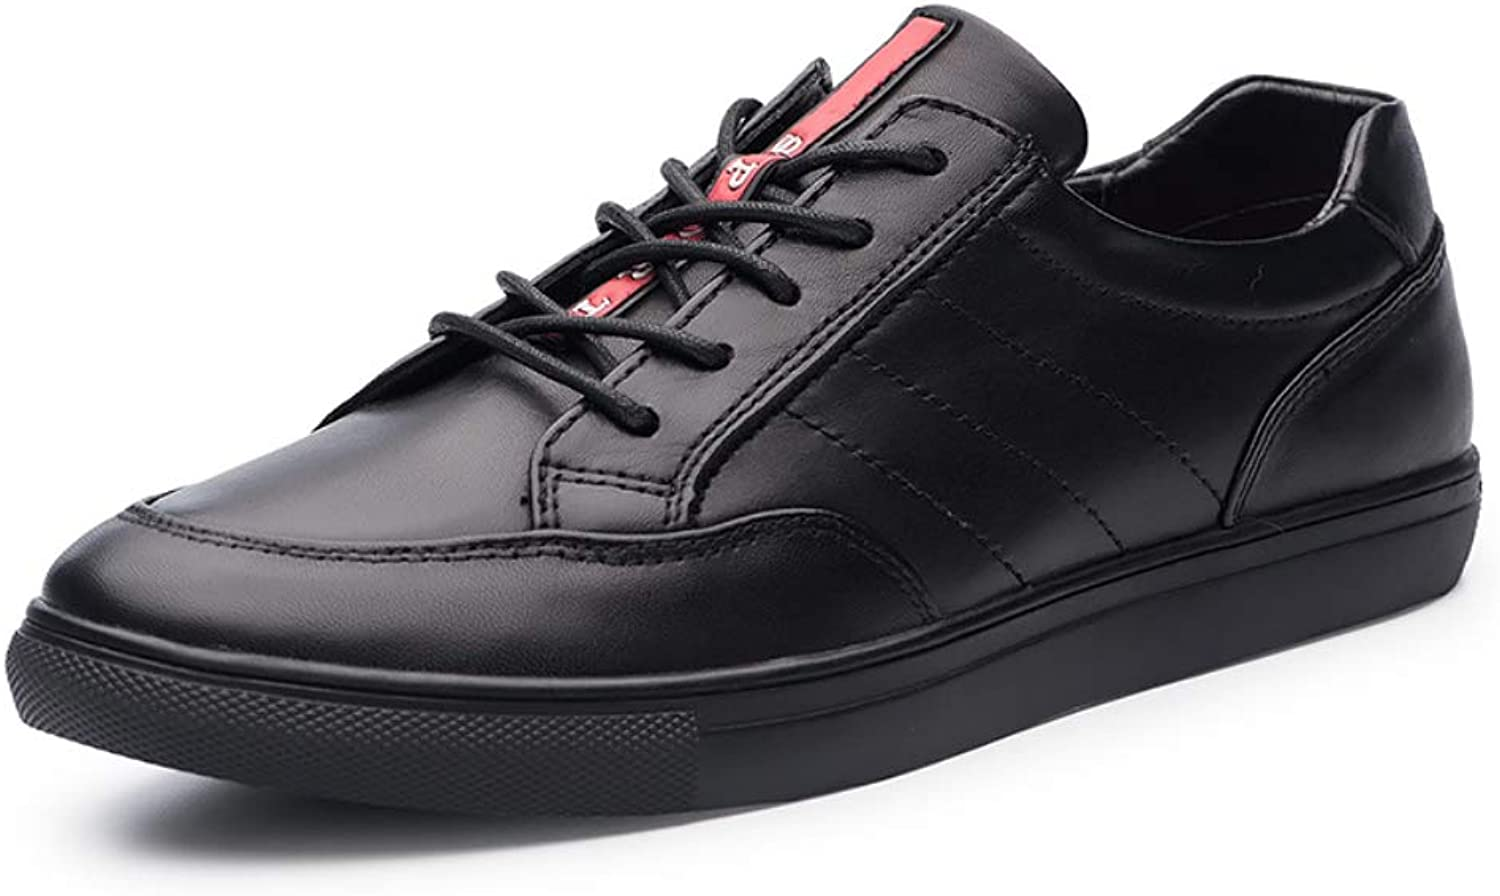 Men's Oxford Leather Non-Slip Casual Driving shoes